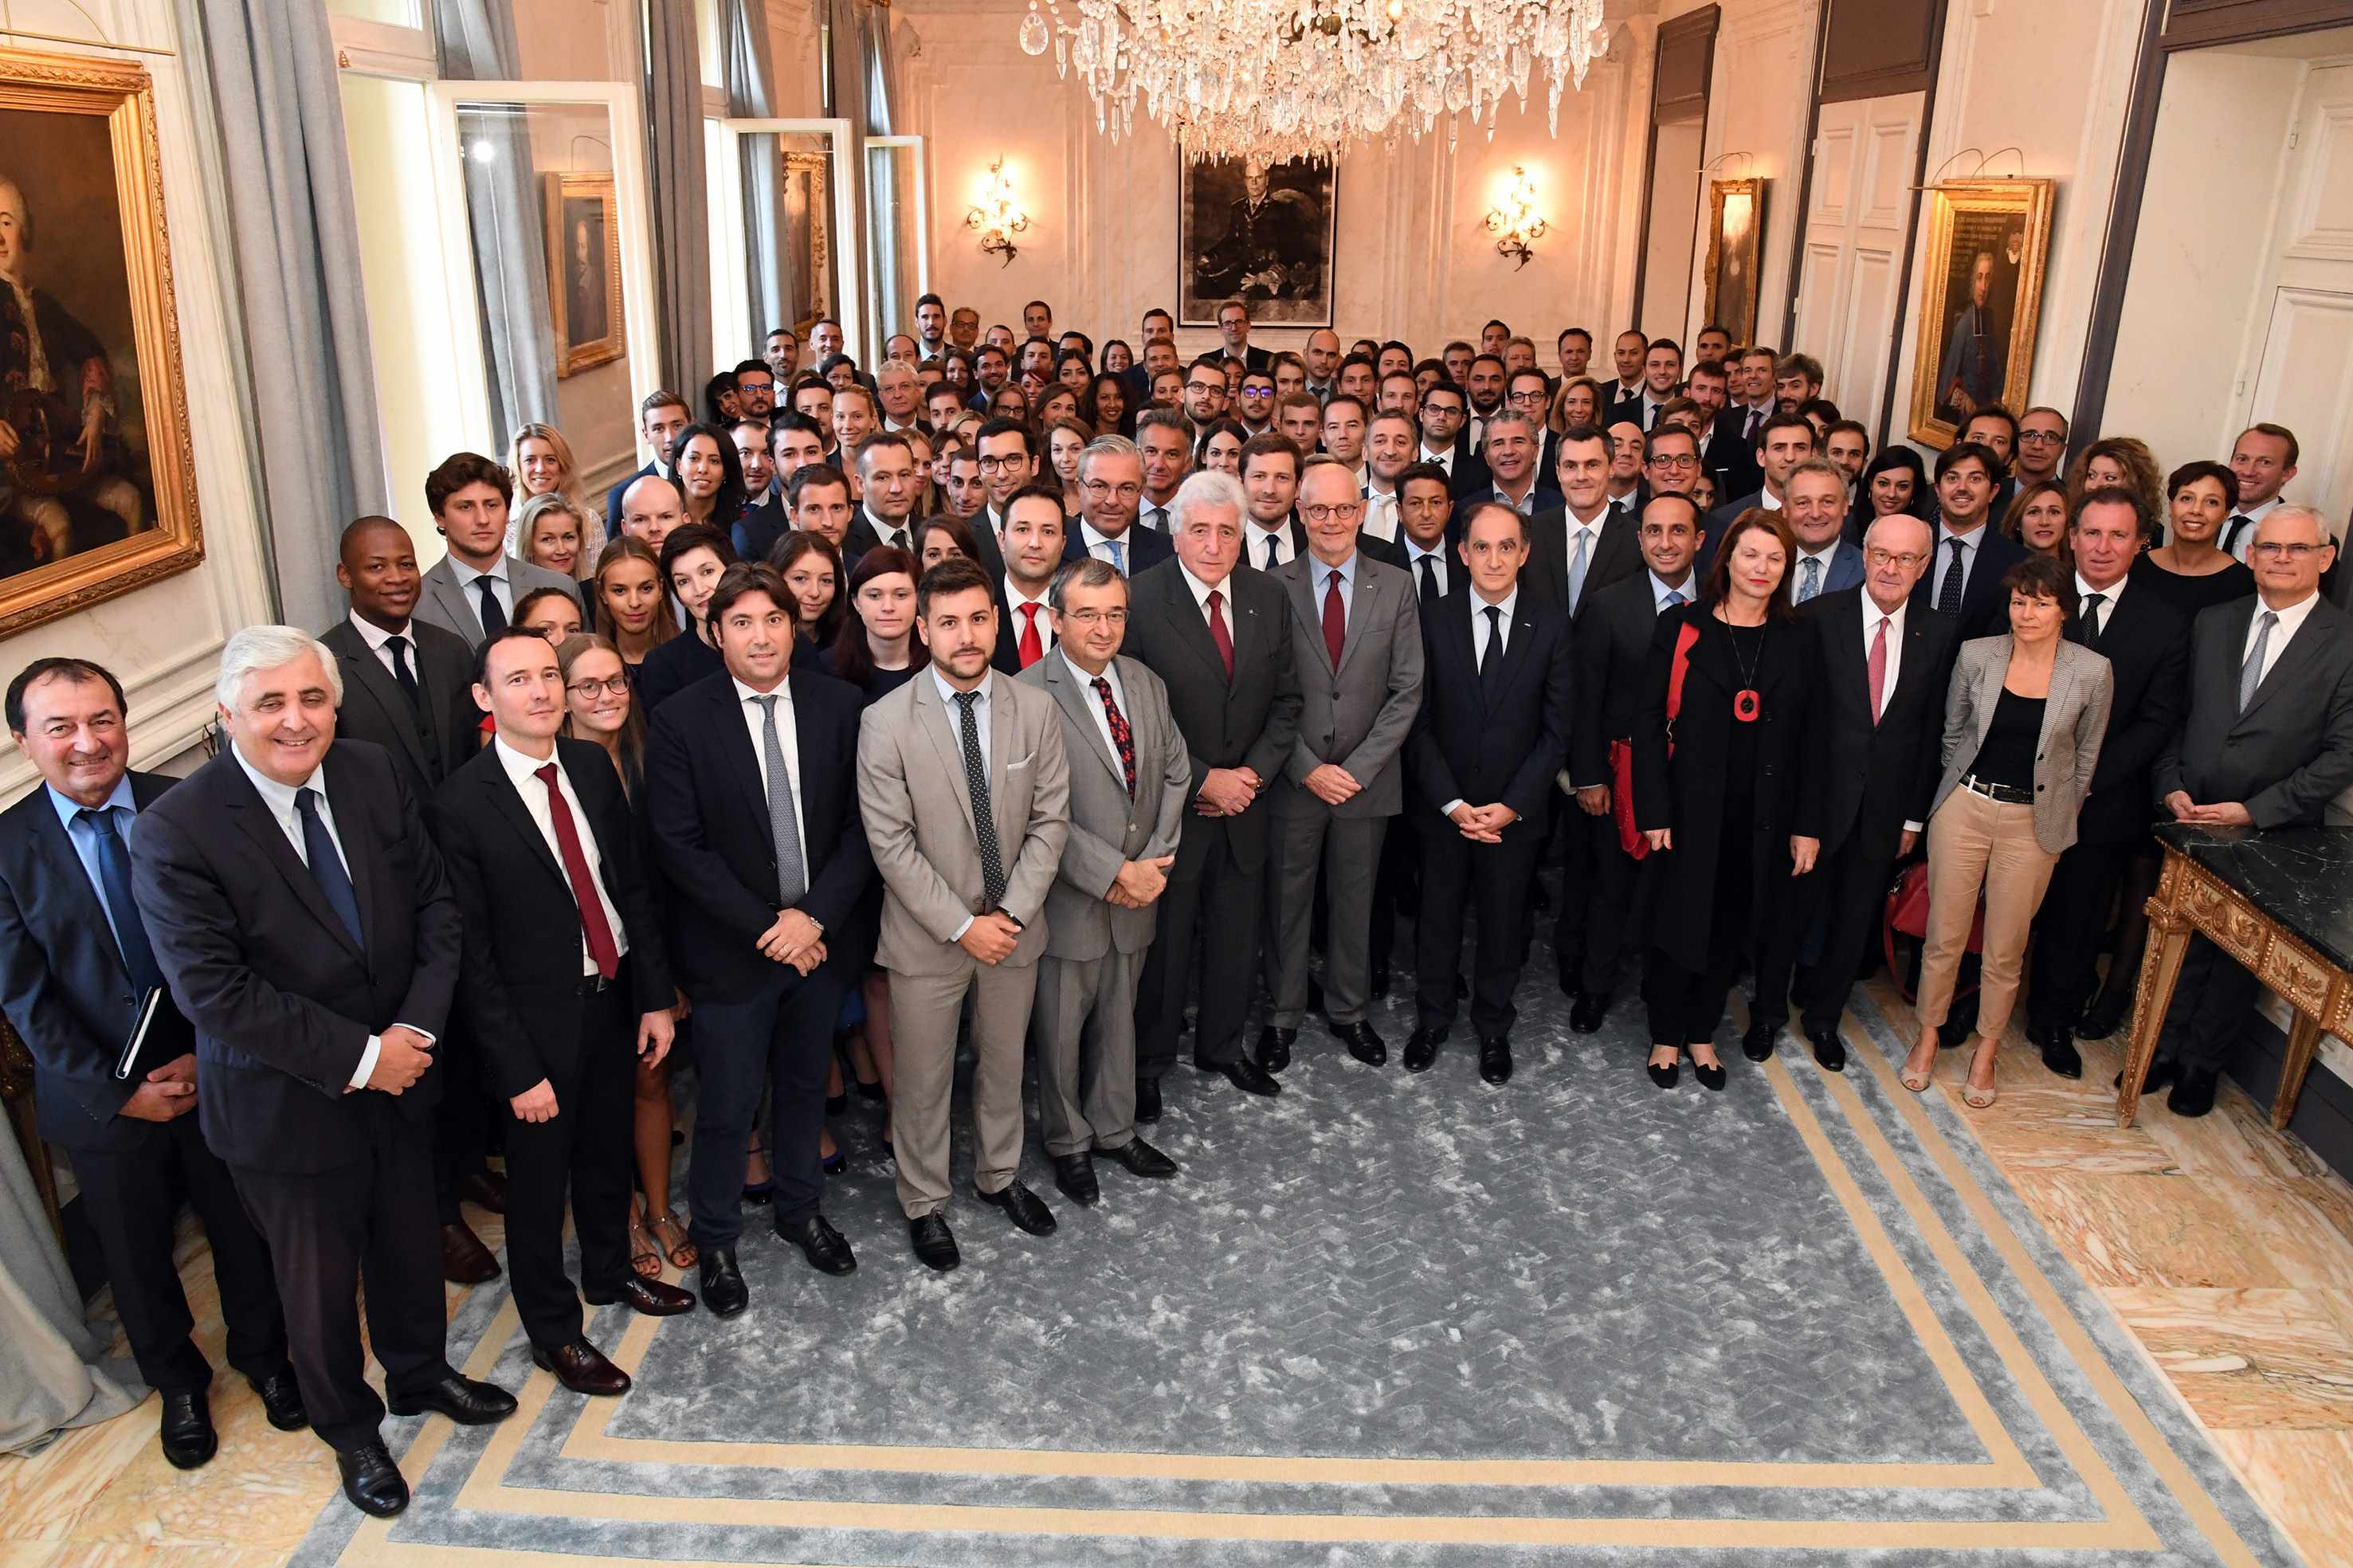 Reception with Minister of State Serge Telle (fifth from right). Photo: Manuel Vitali/DC